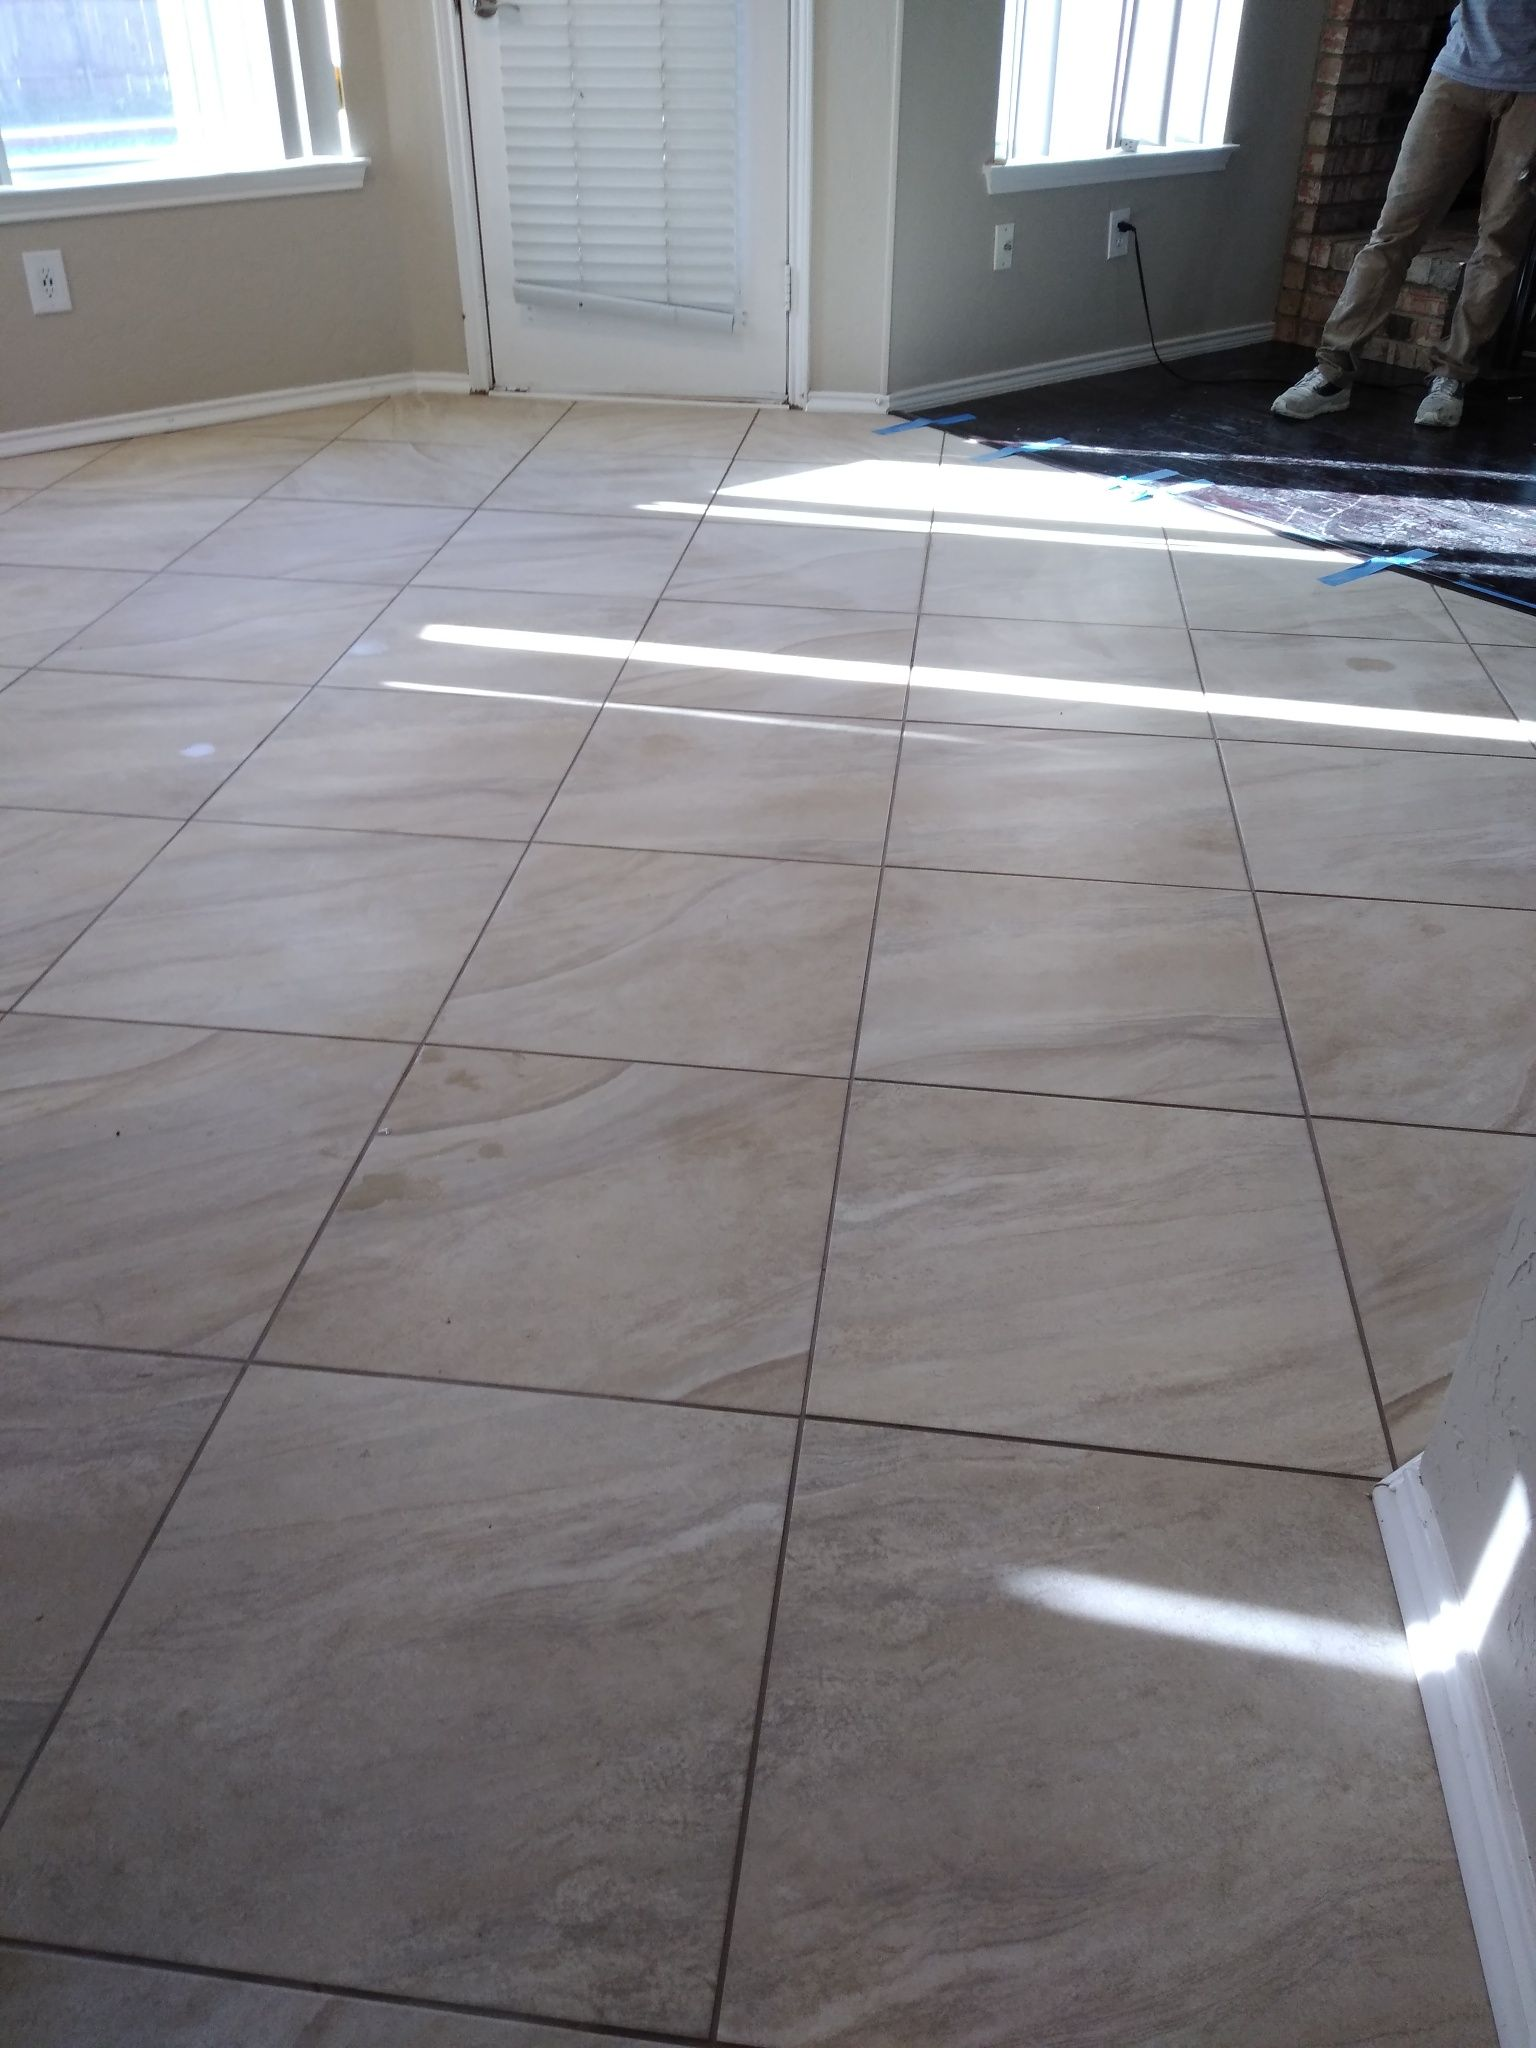 20x20 Tile Laid On Diagonal Pattern In Small Bathroom Stone